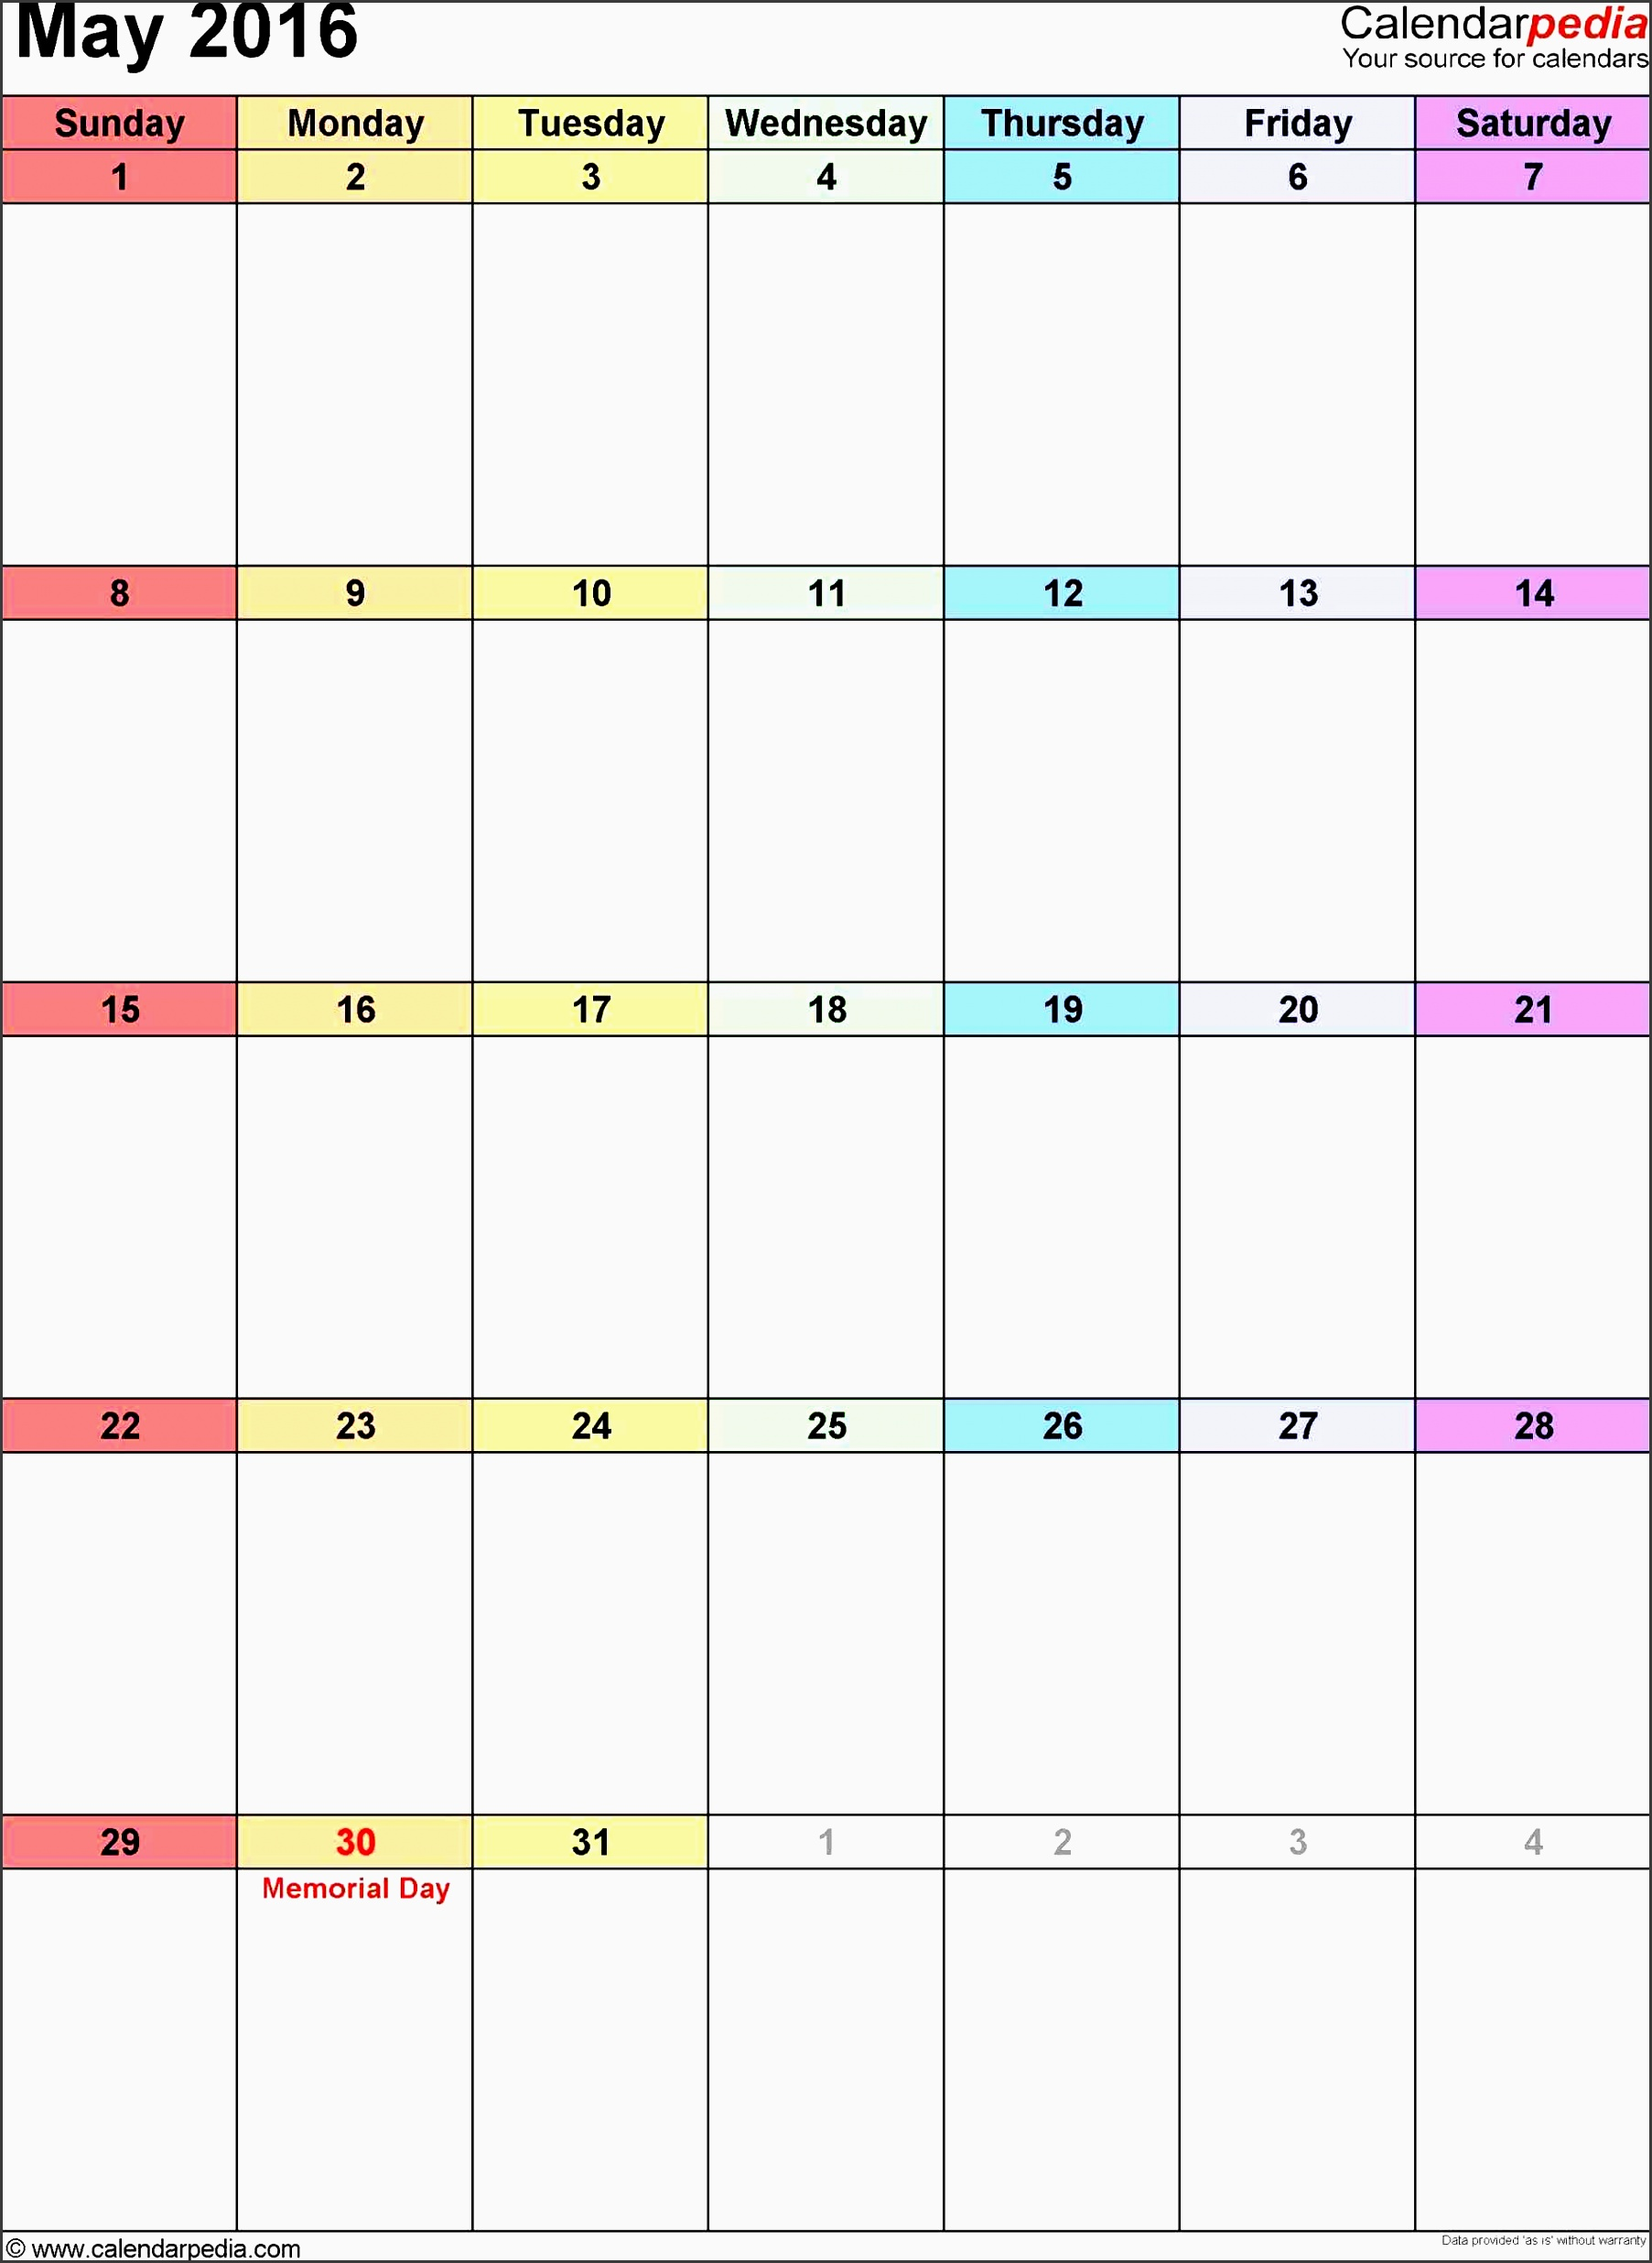 online calendar weekly schedule for excel version schedules on one schedule system excel business travel planner planificare pinterest trip business travel